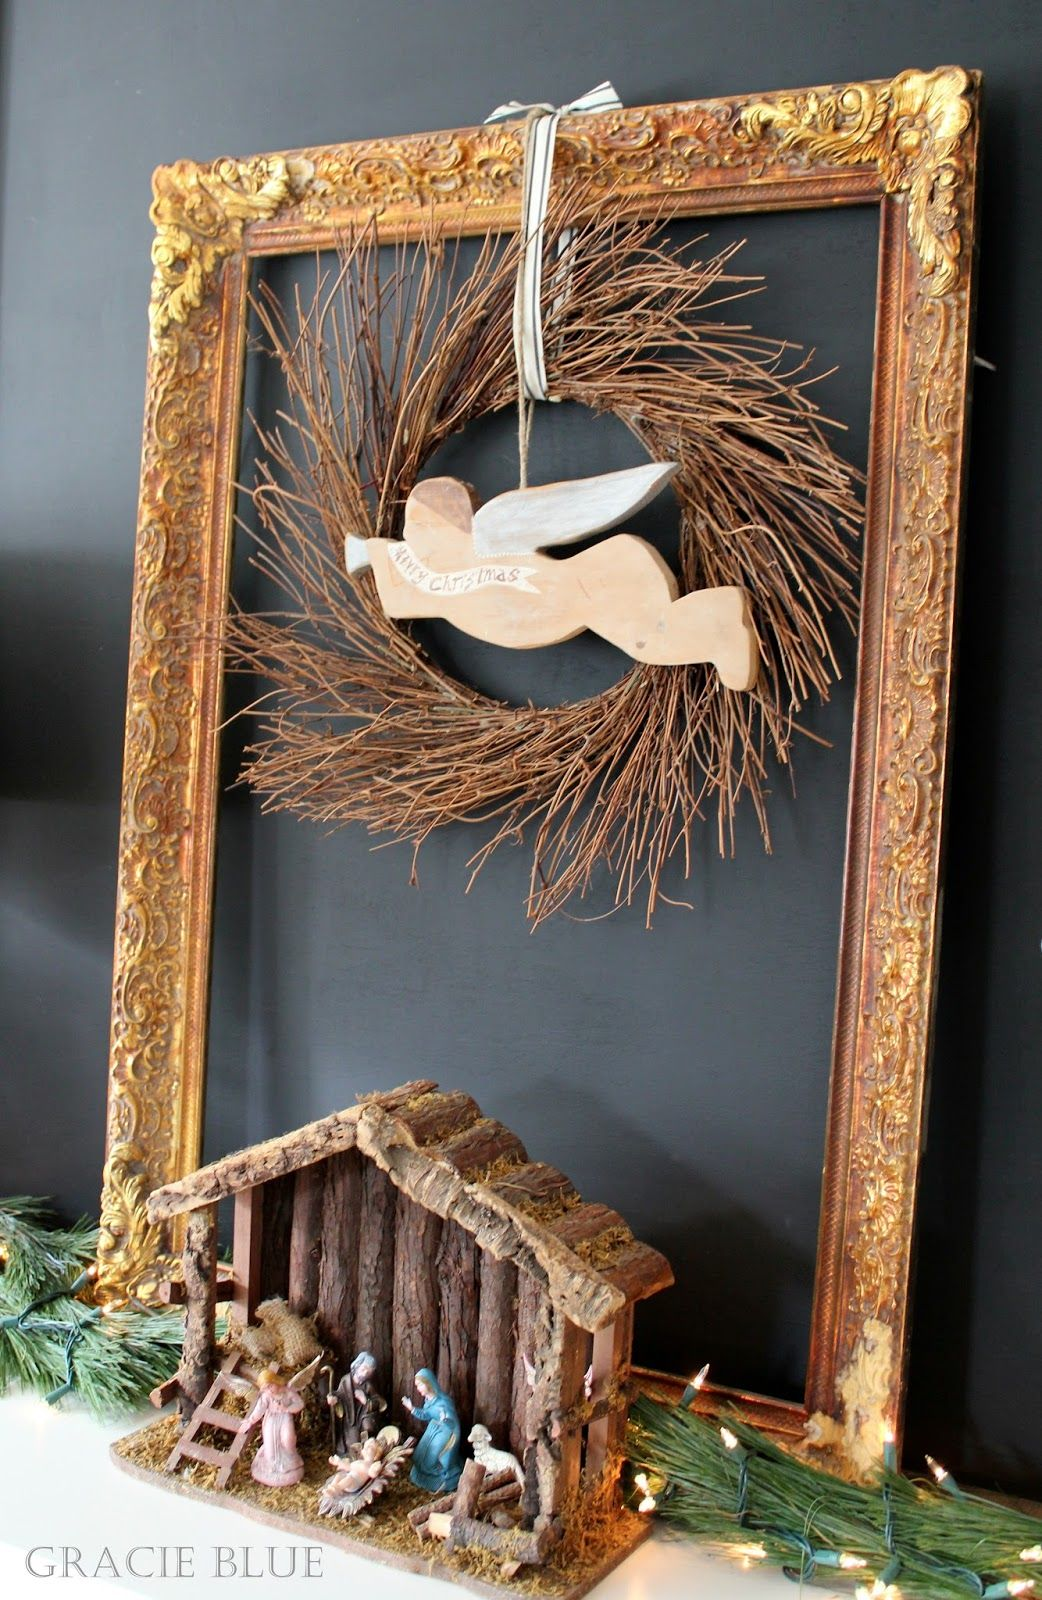 Gracie Blue : Christmas Vignette {Keeping it Simple}